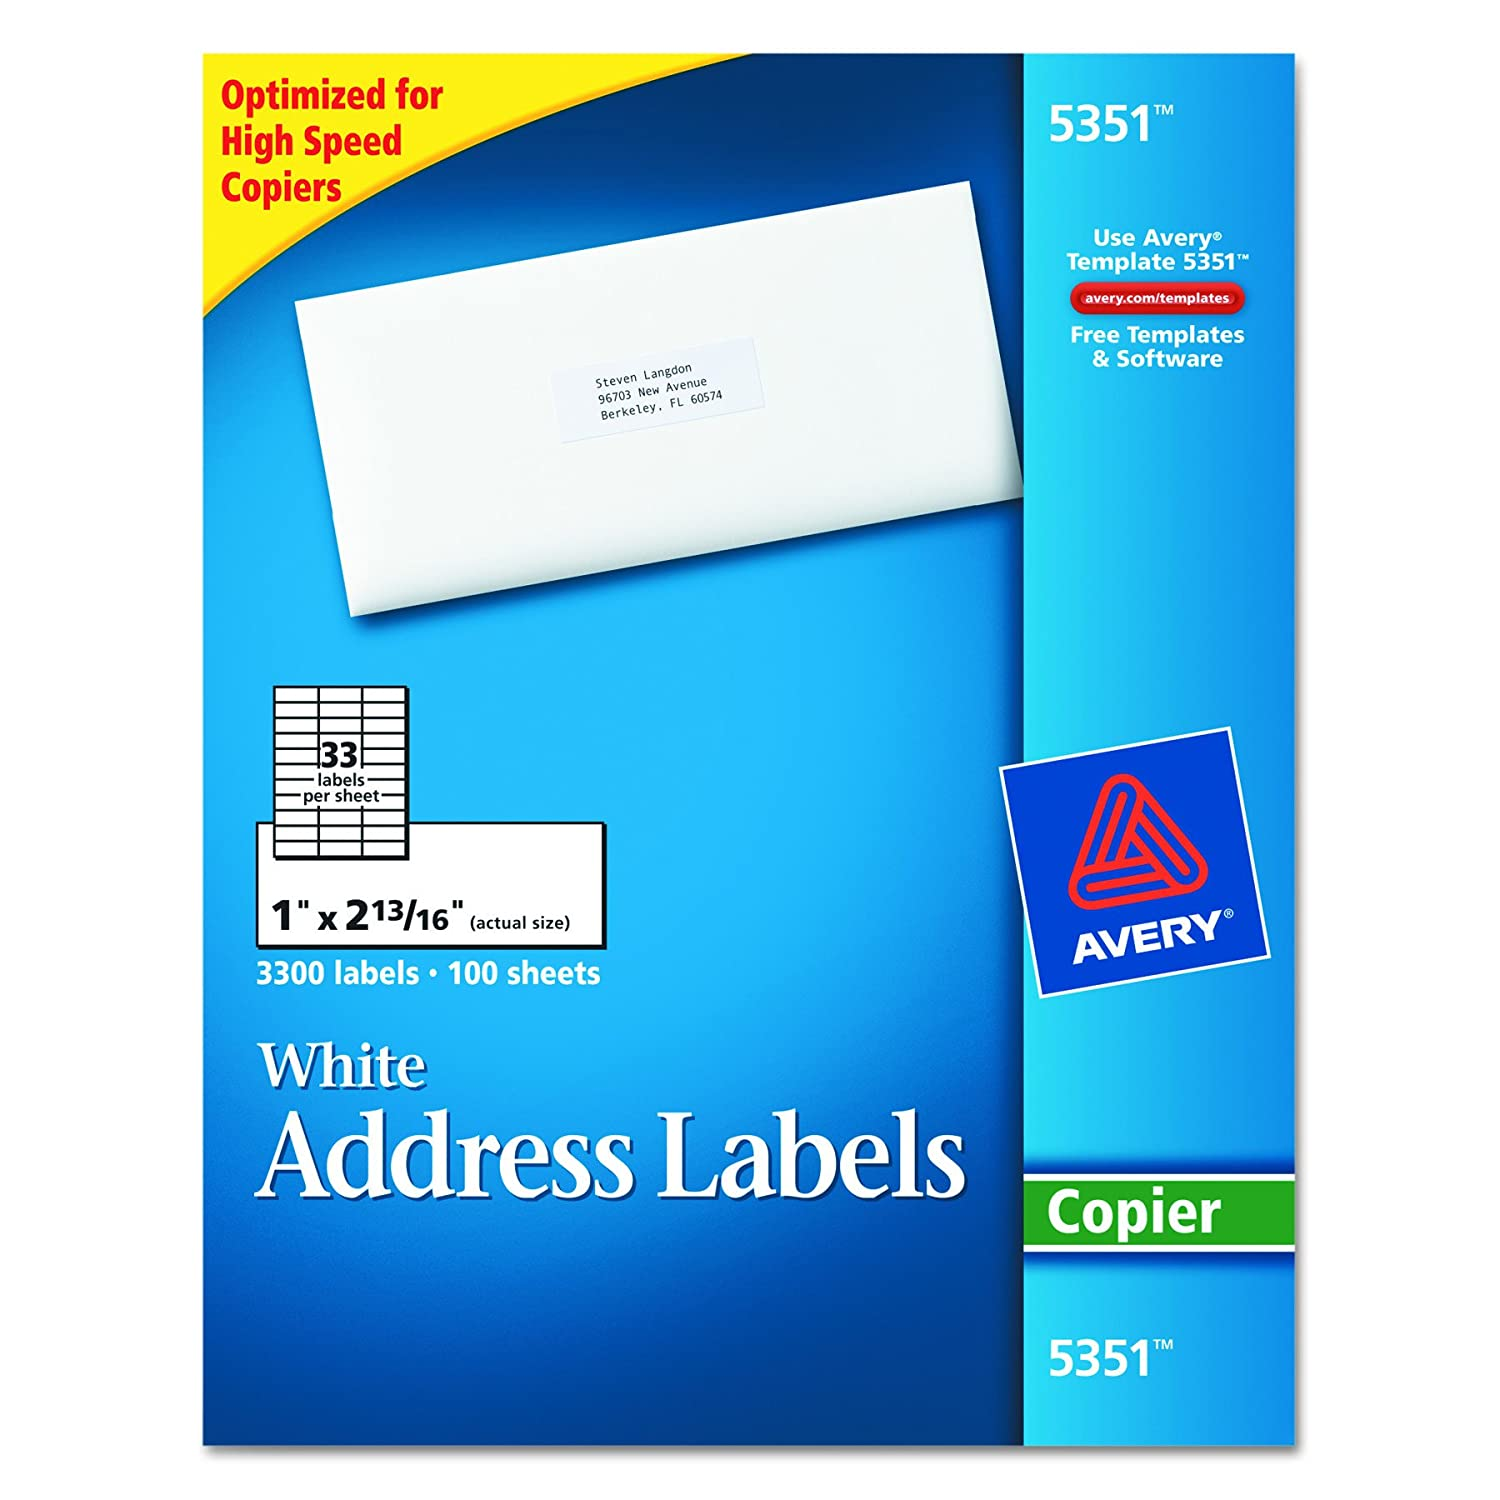 Avery 5351 self adhesive address labels for copiers white 1 x 2 13 avery 5351 self adhesive address labels for copiers white 1 x 2 1316 3300box amazon office products saigontimesfo